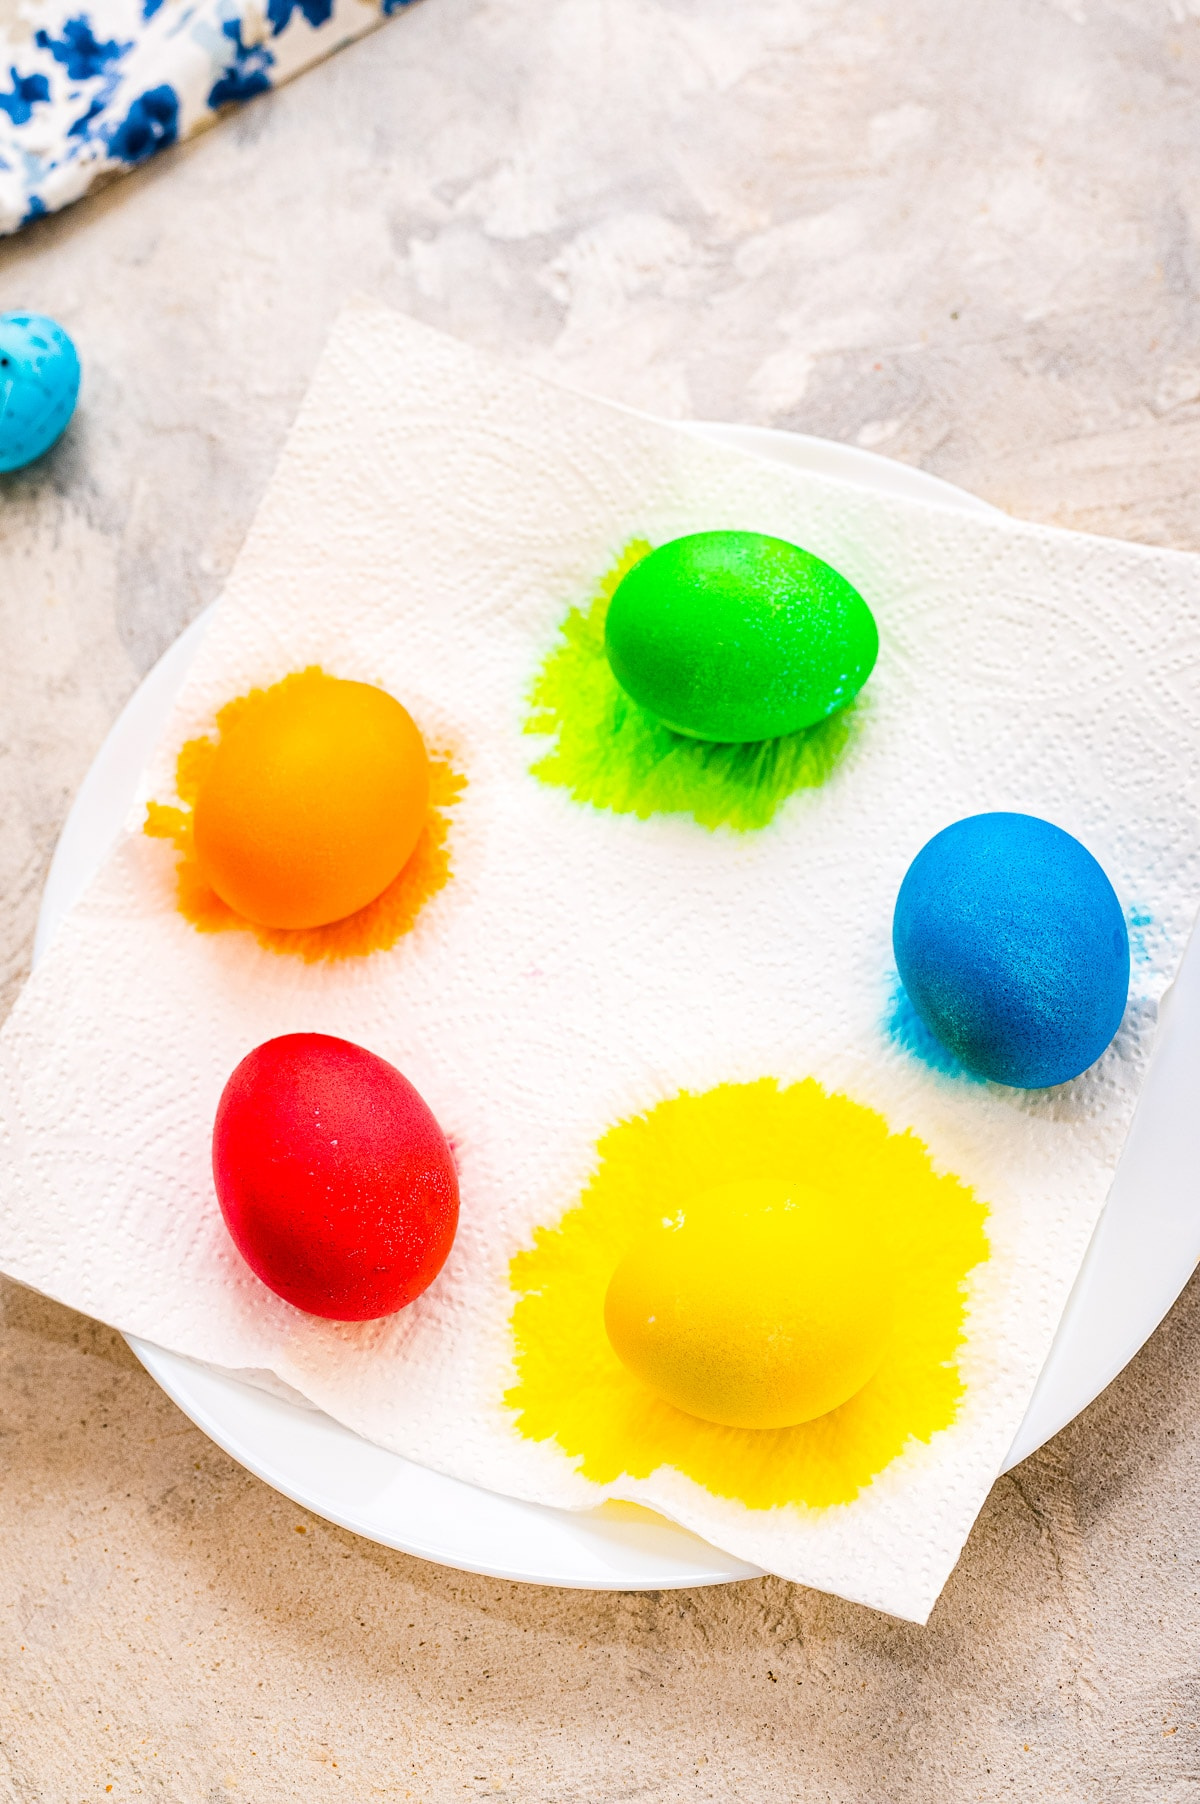 Dyed Easter Eggs on paper towels drying